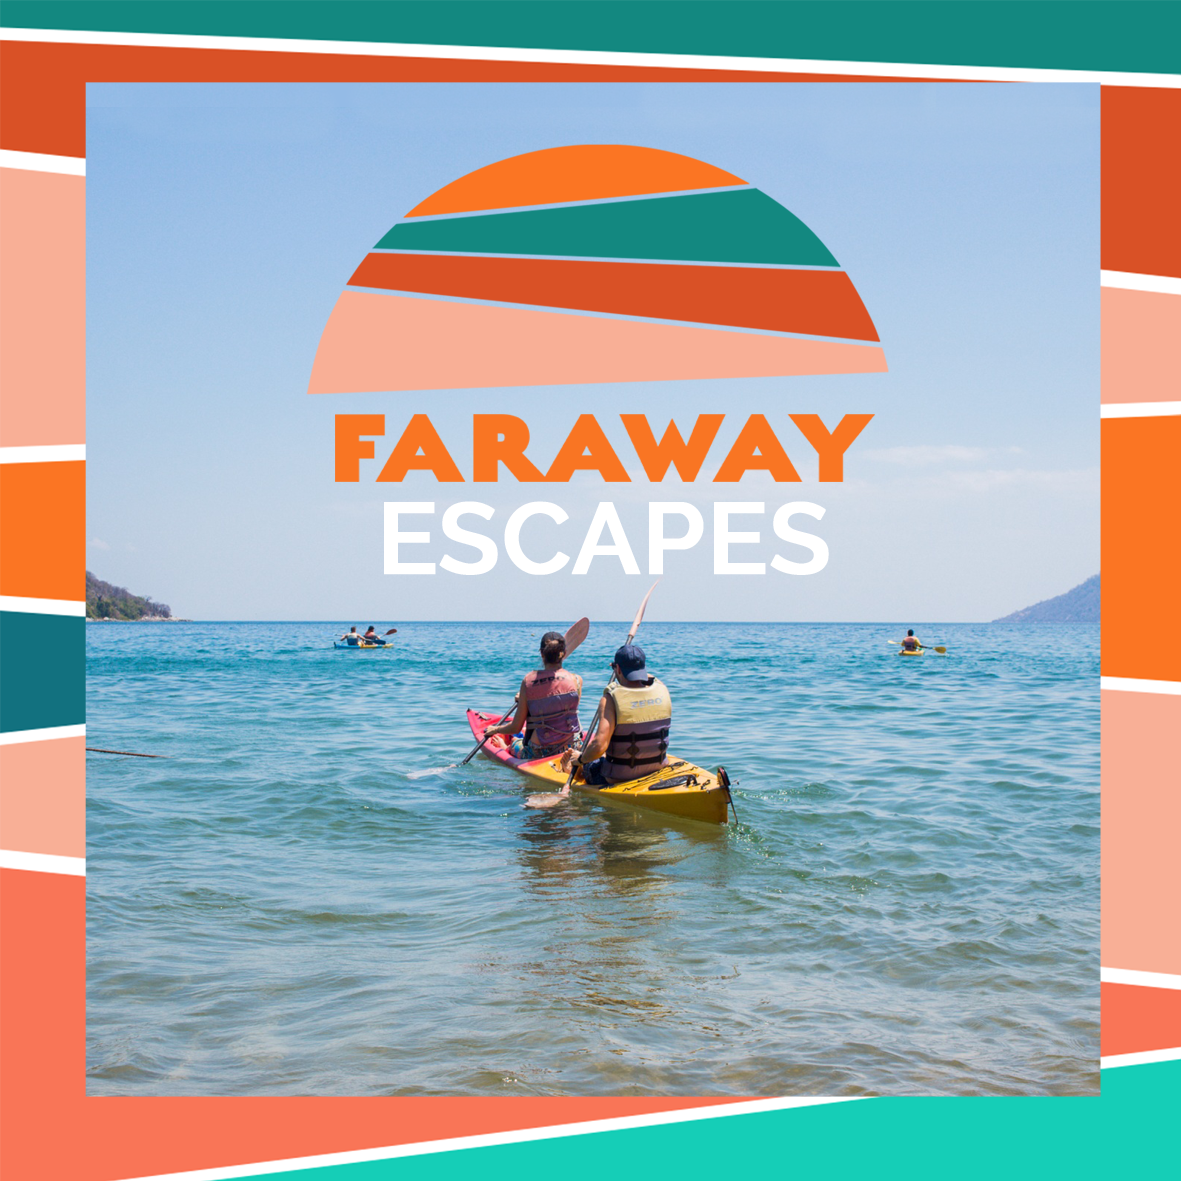 Faraway Escapes are expertly curated, one-off group adventures to under-the-radar destinations